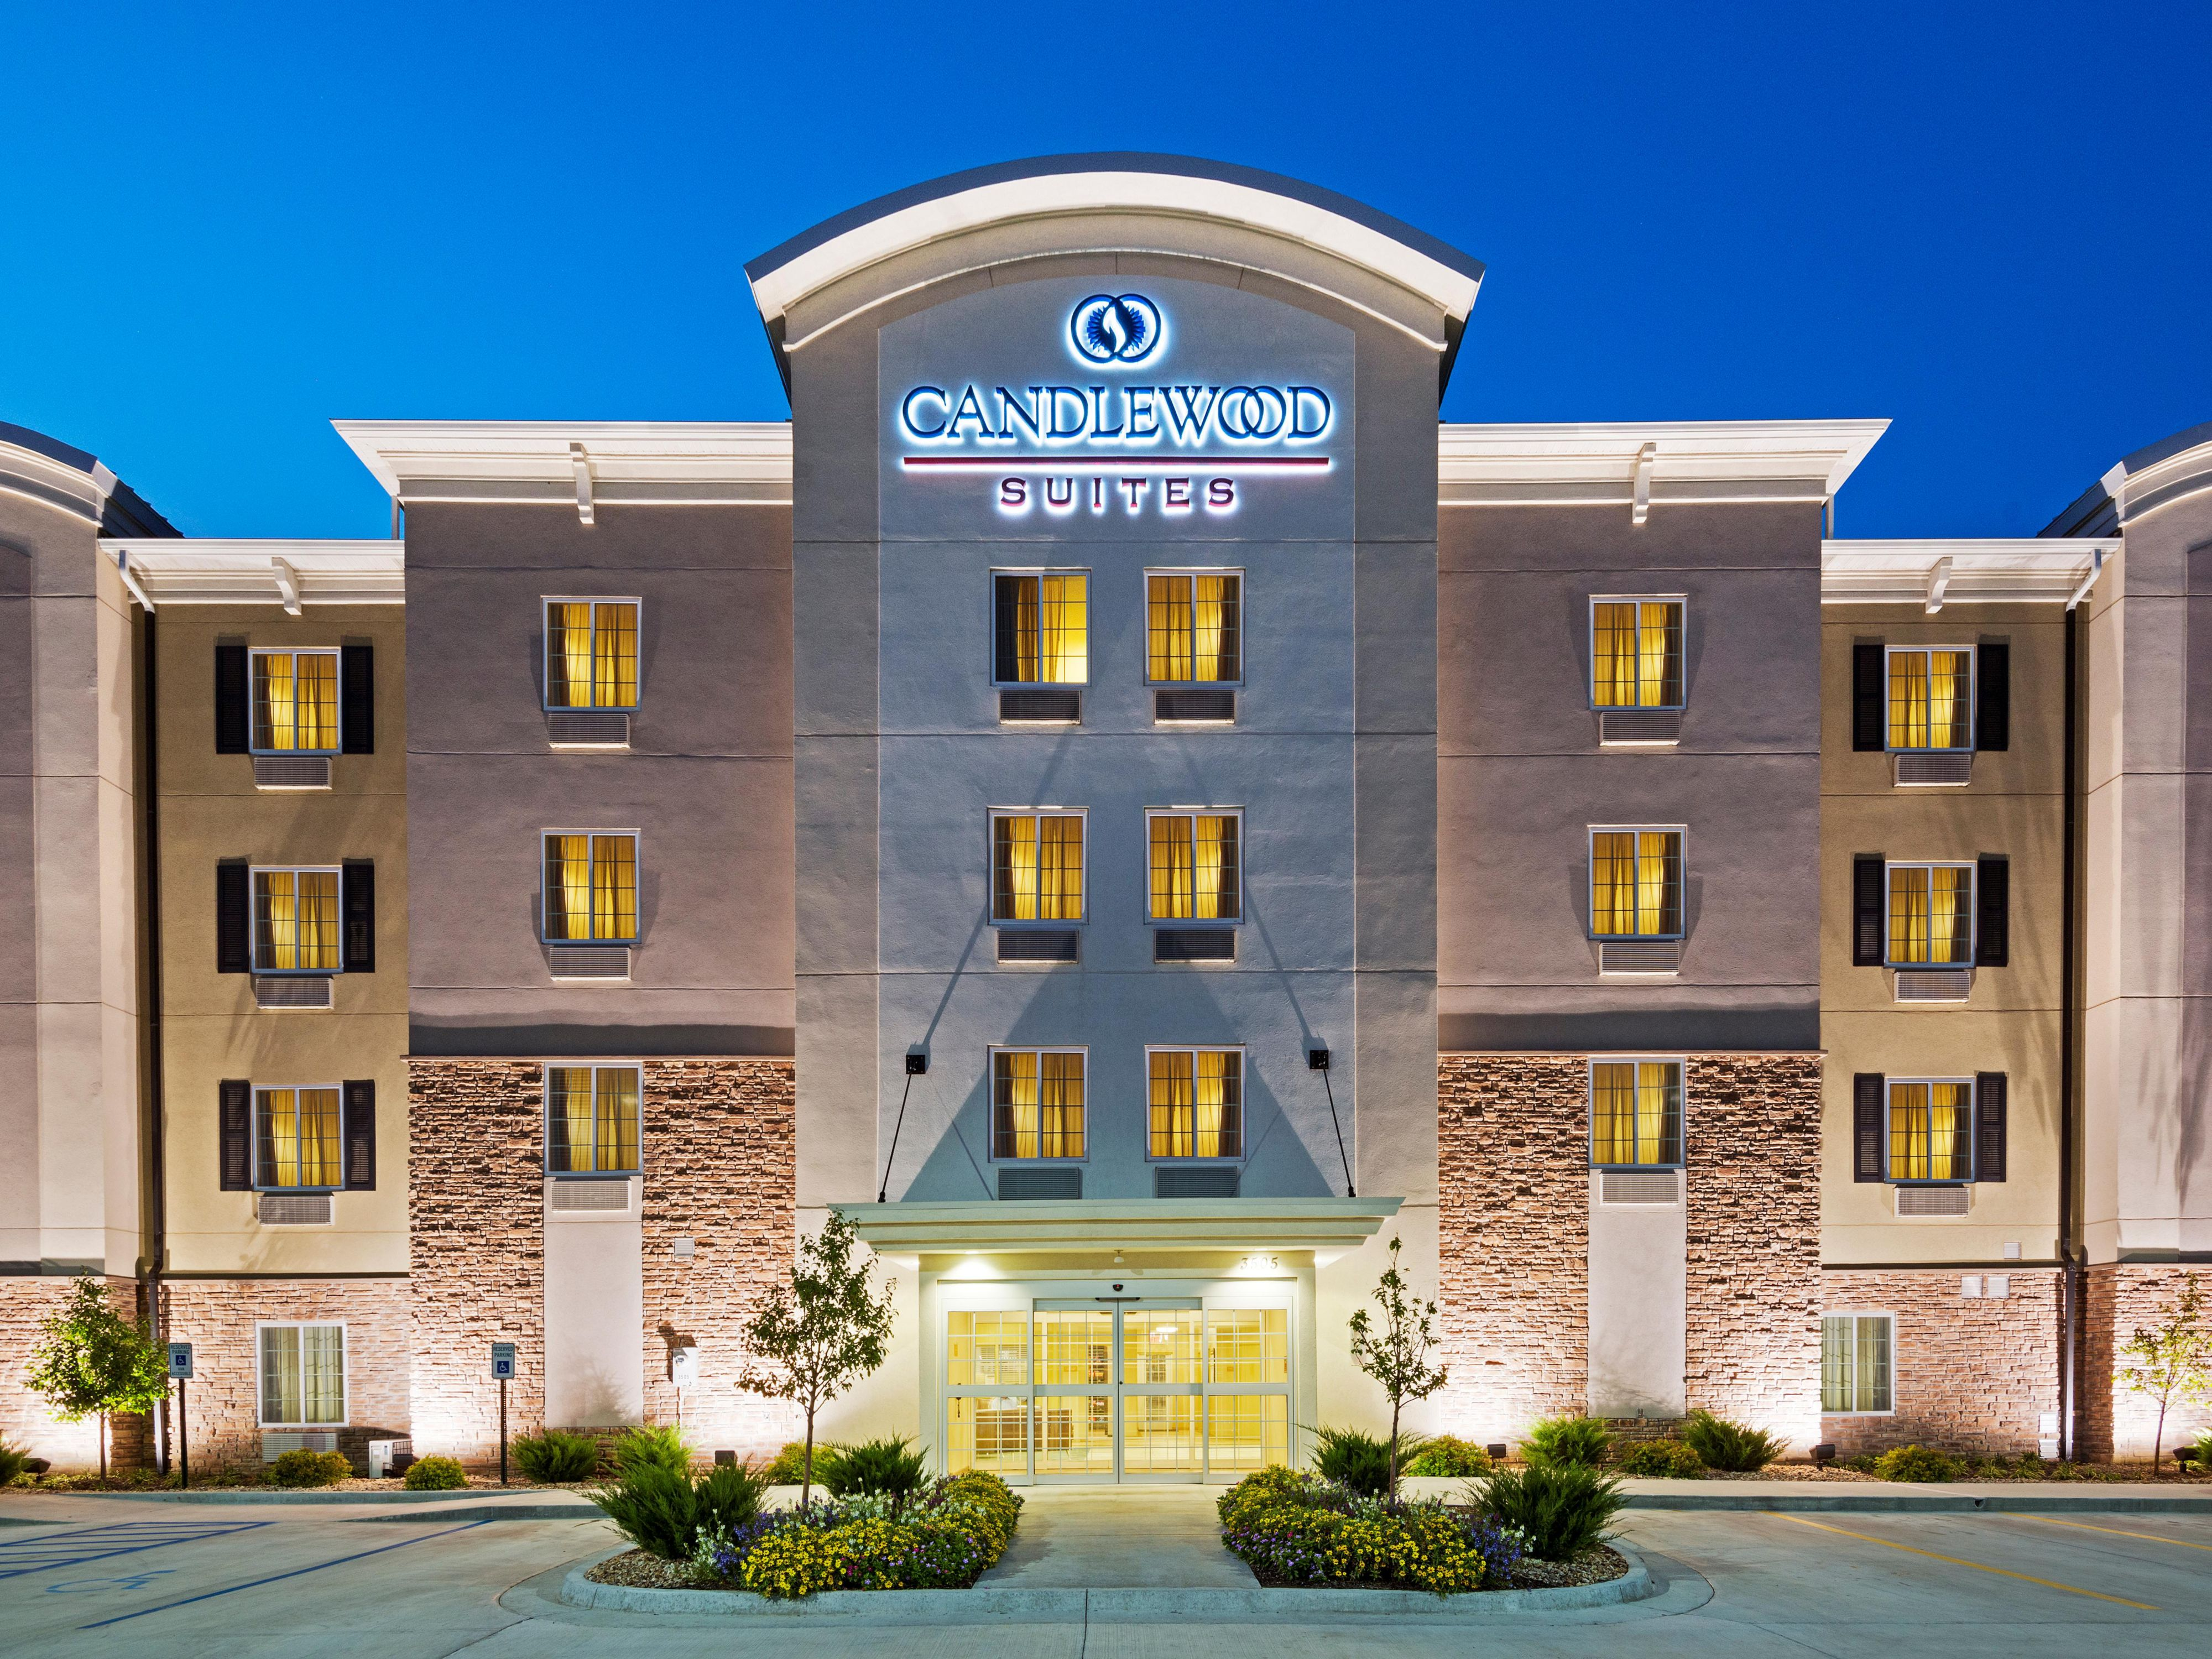 Candlewood Suites Dumfries Quantico Extended Stay Hotel In Virginia